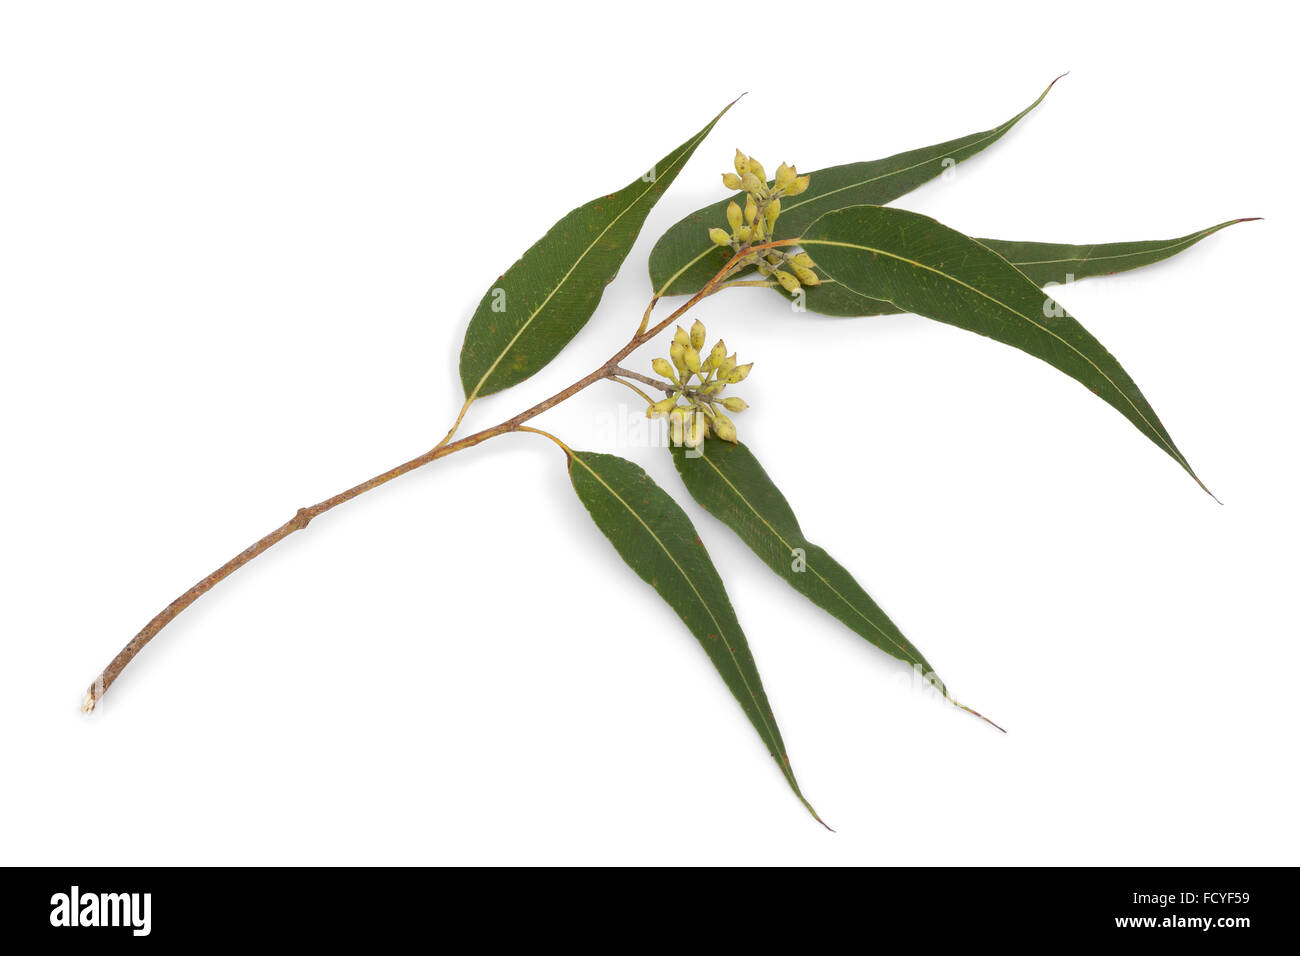 Eucalyptus branch and leaves on white background Stock Photo